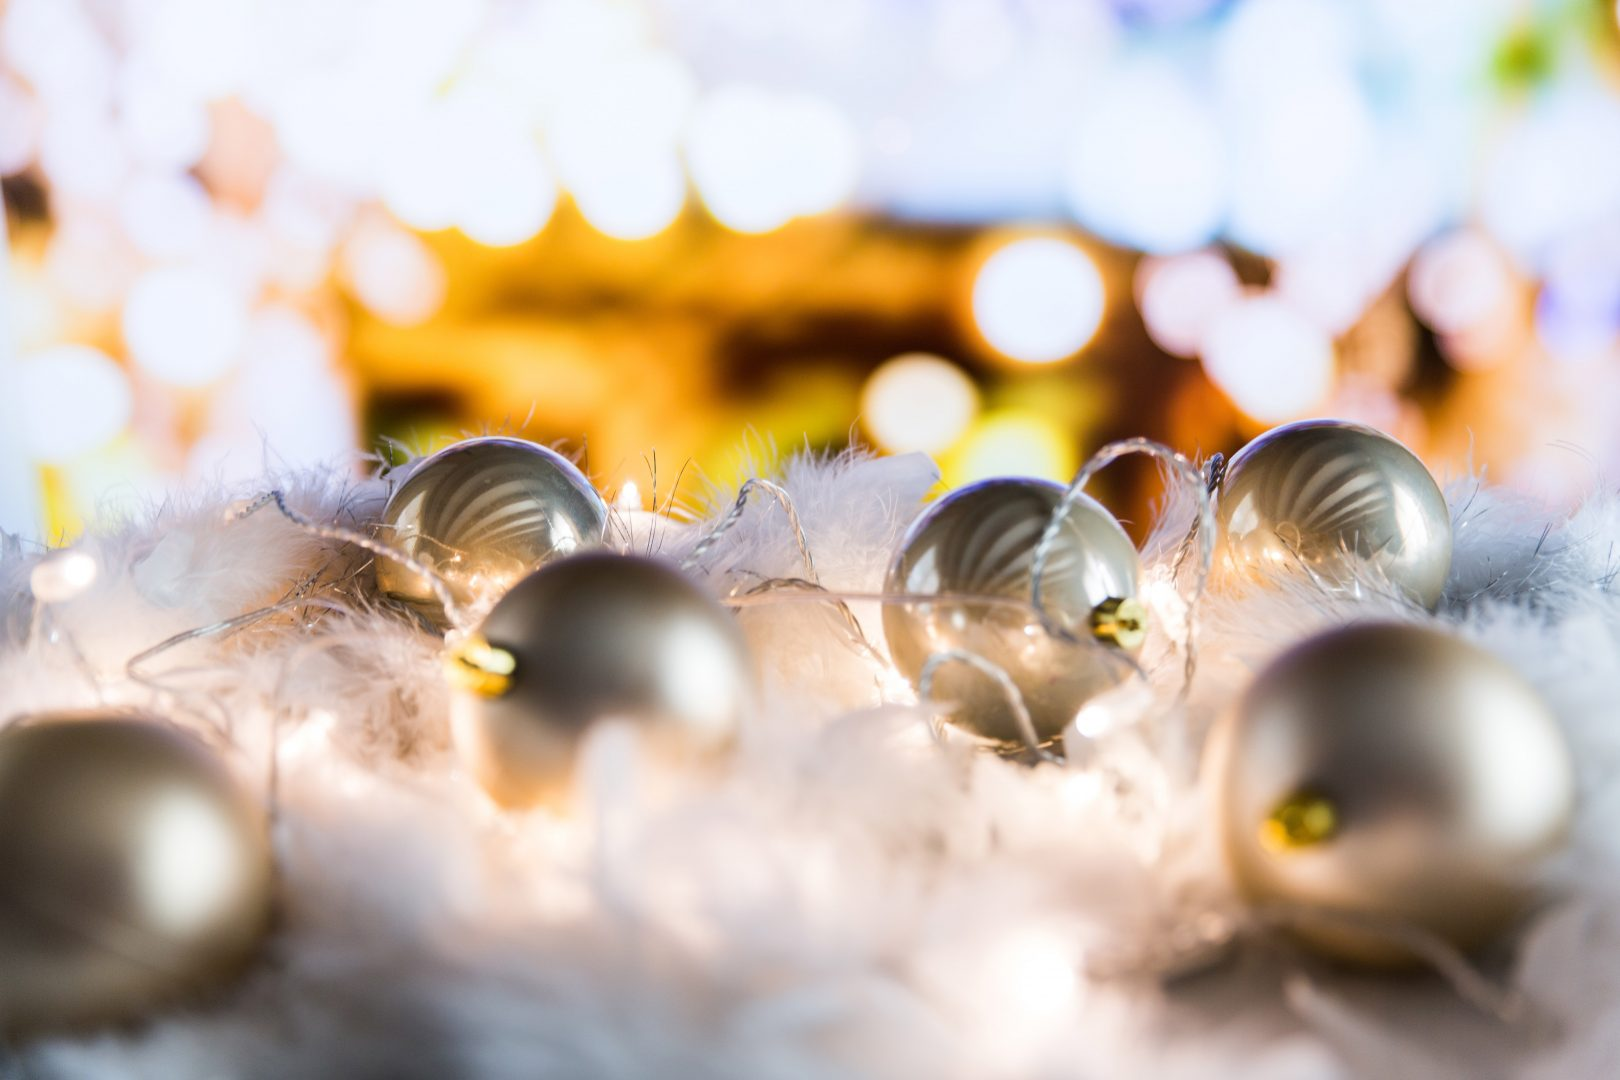 tilt shift lens photography of gray baubles